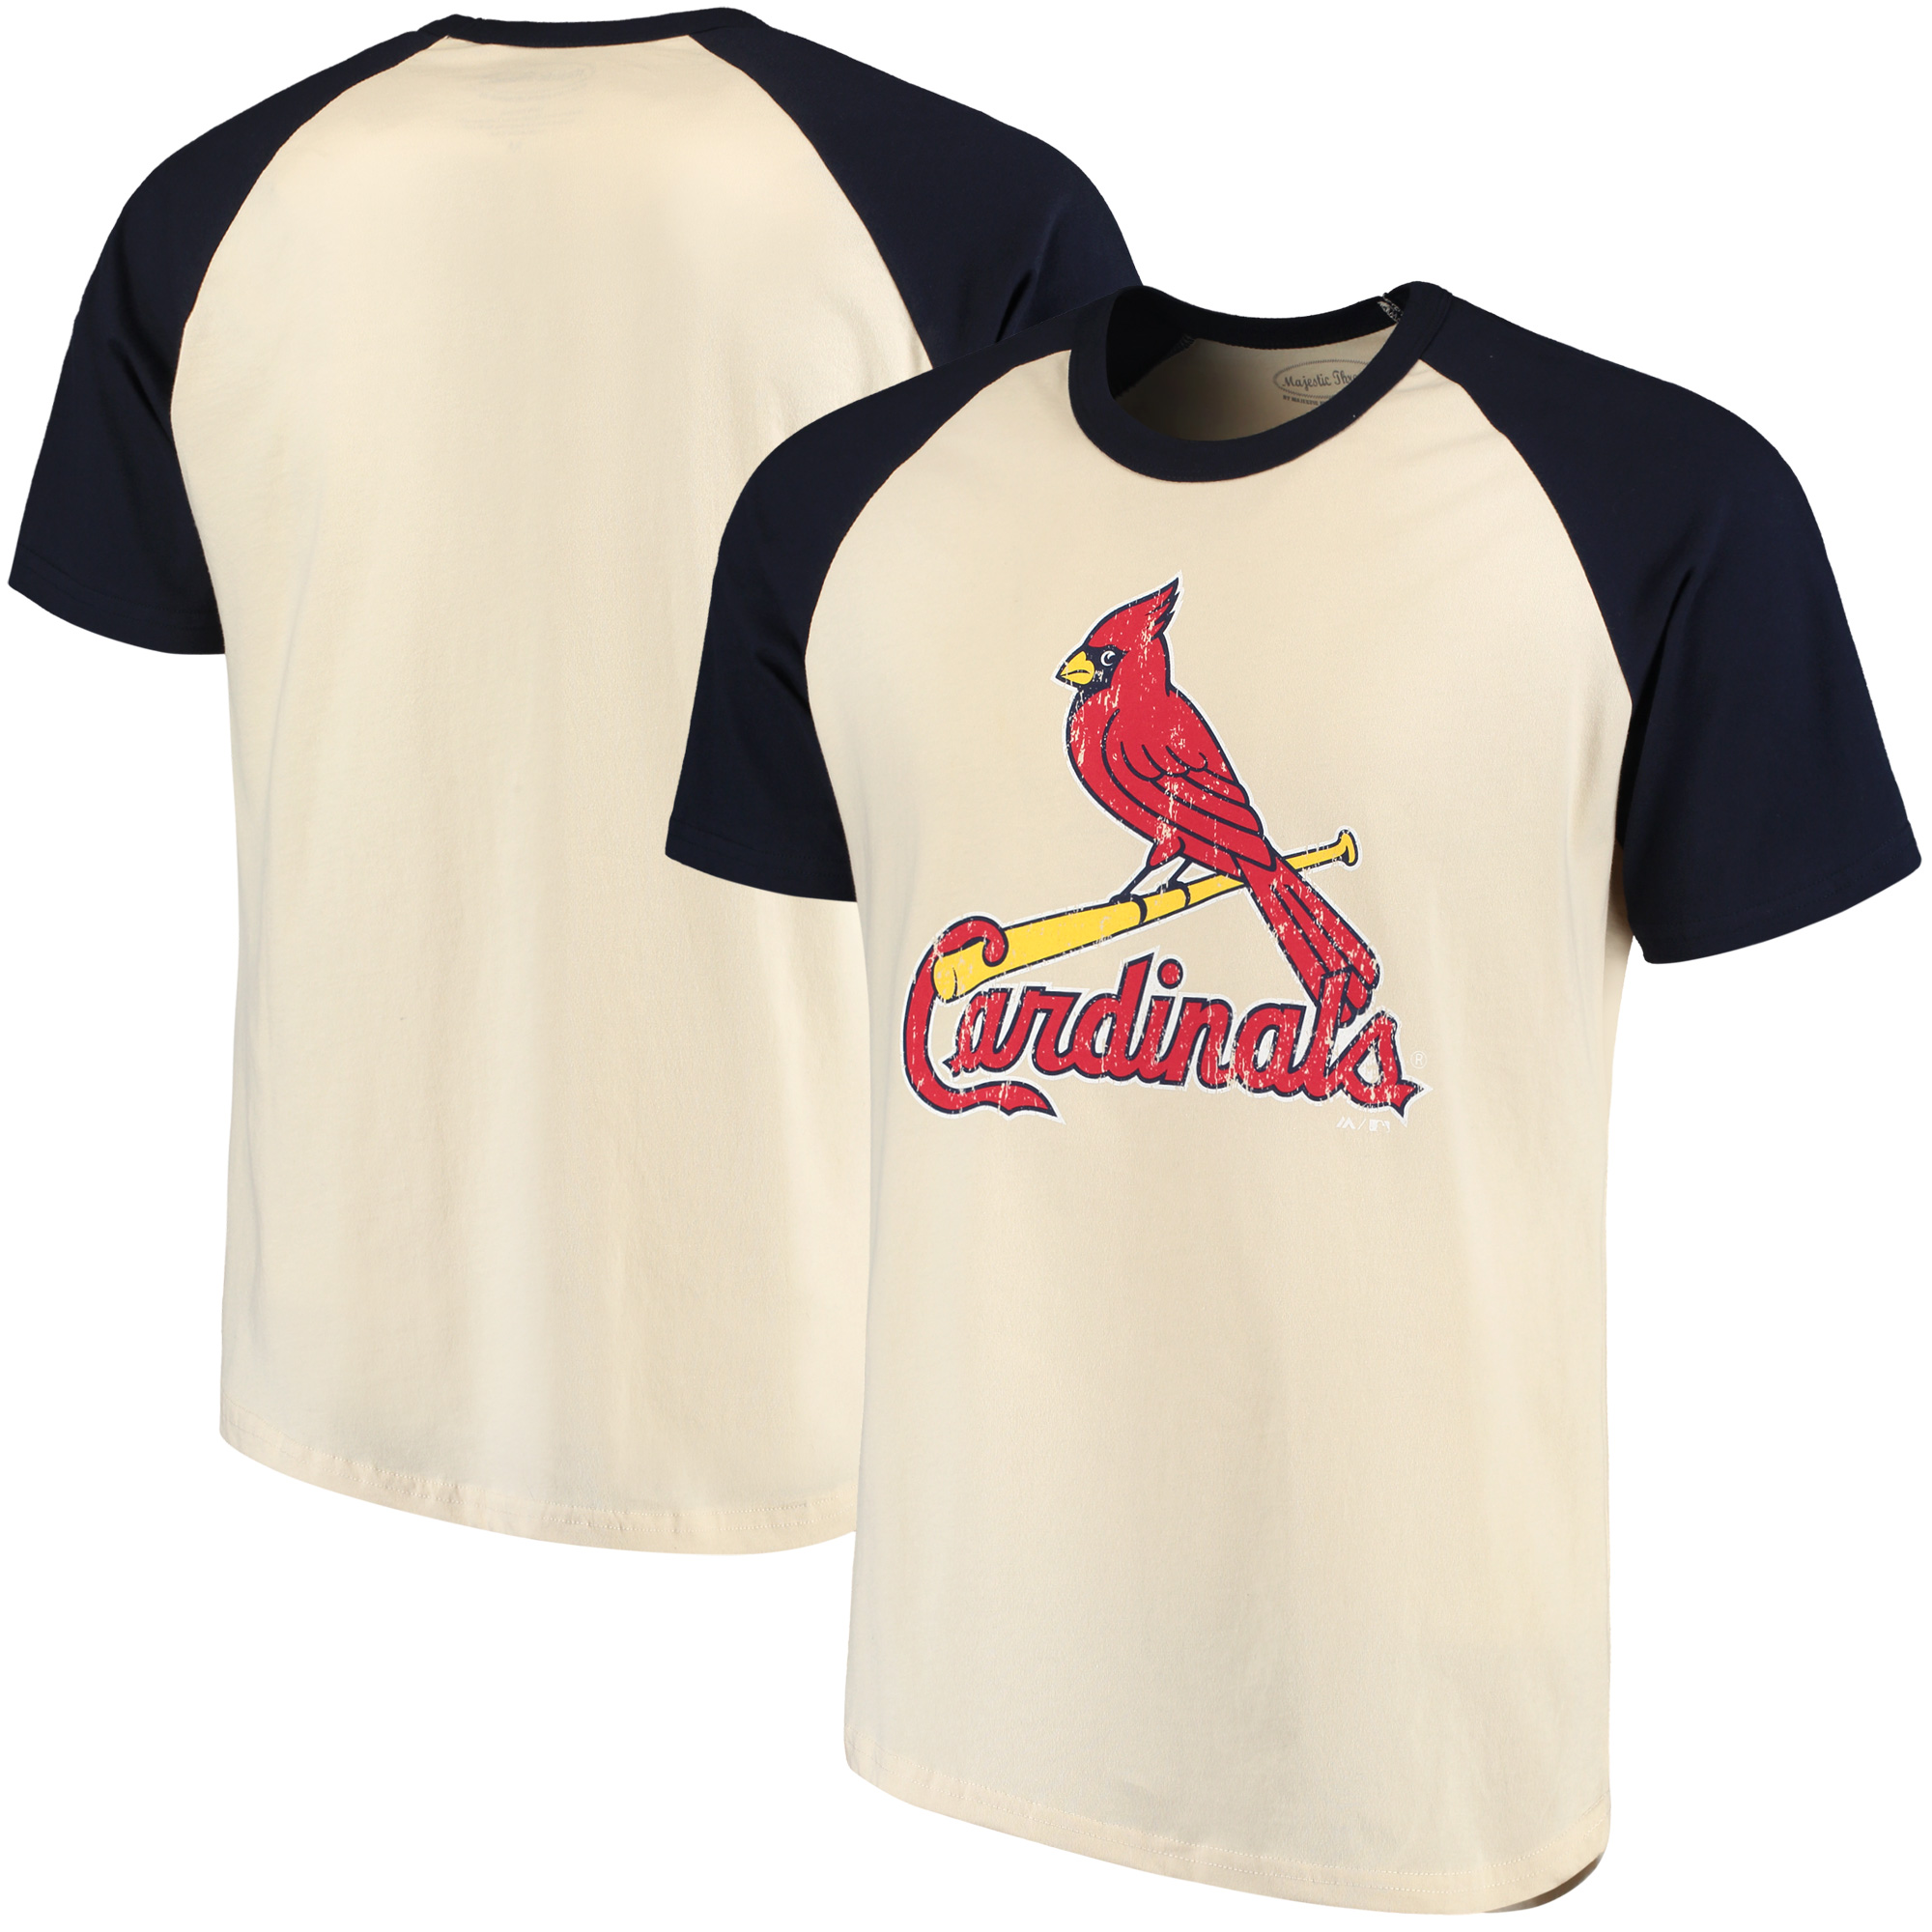 St. Louis Cardinals Majestic Threads Softhand Raglan T-Shirt - Cream/Navy